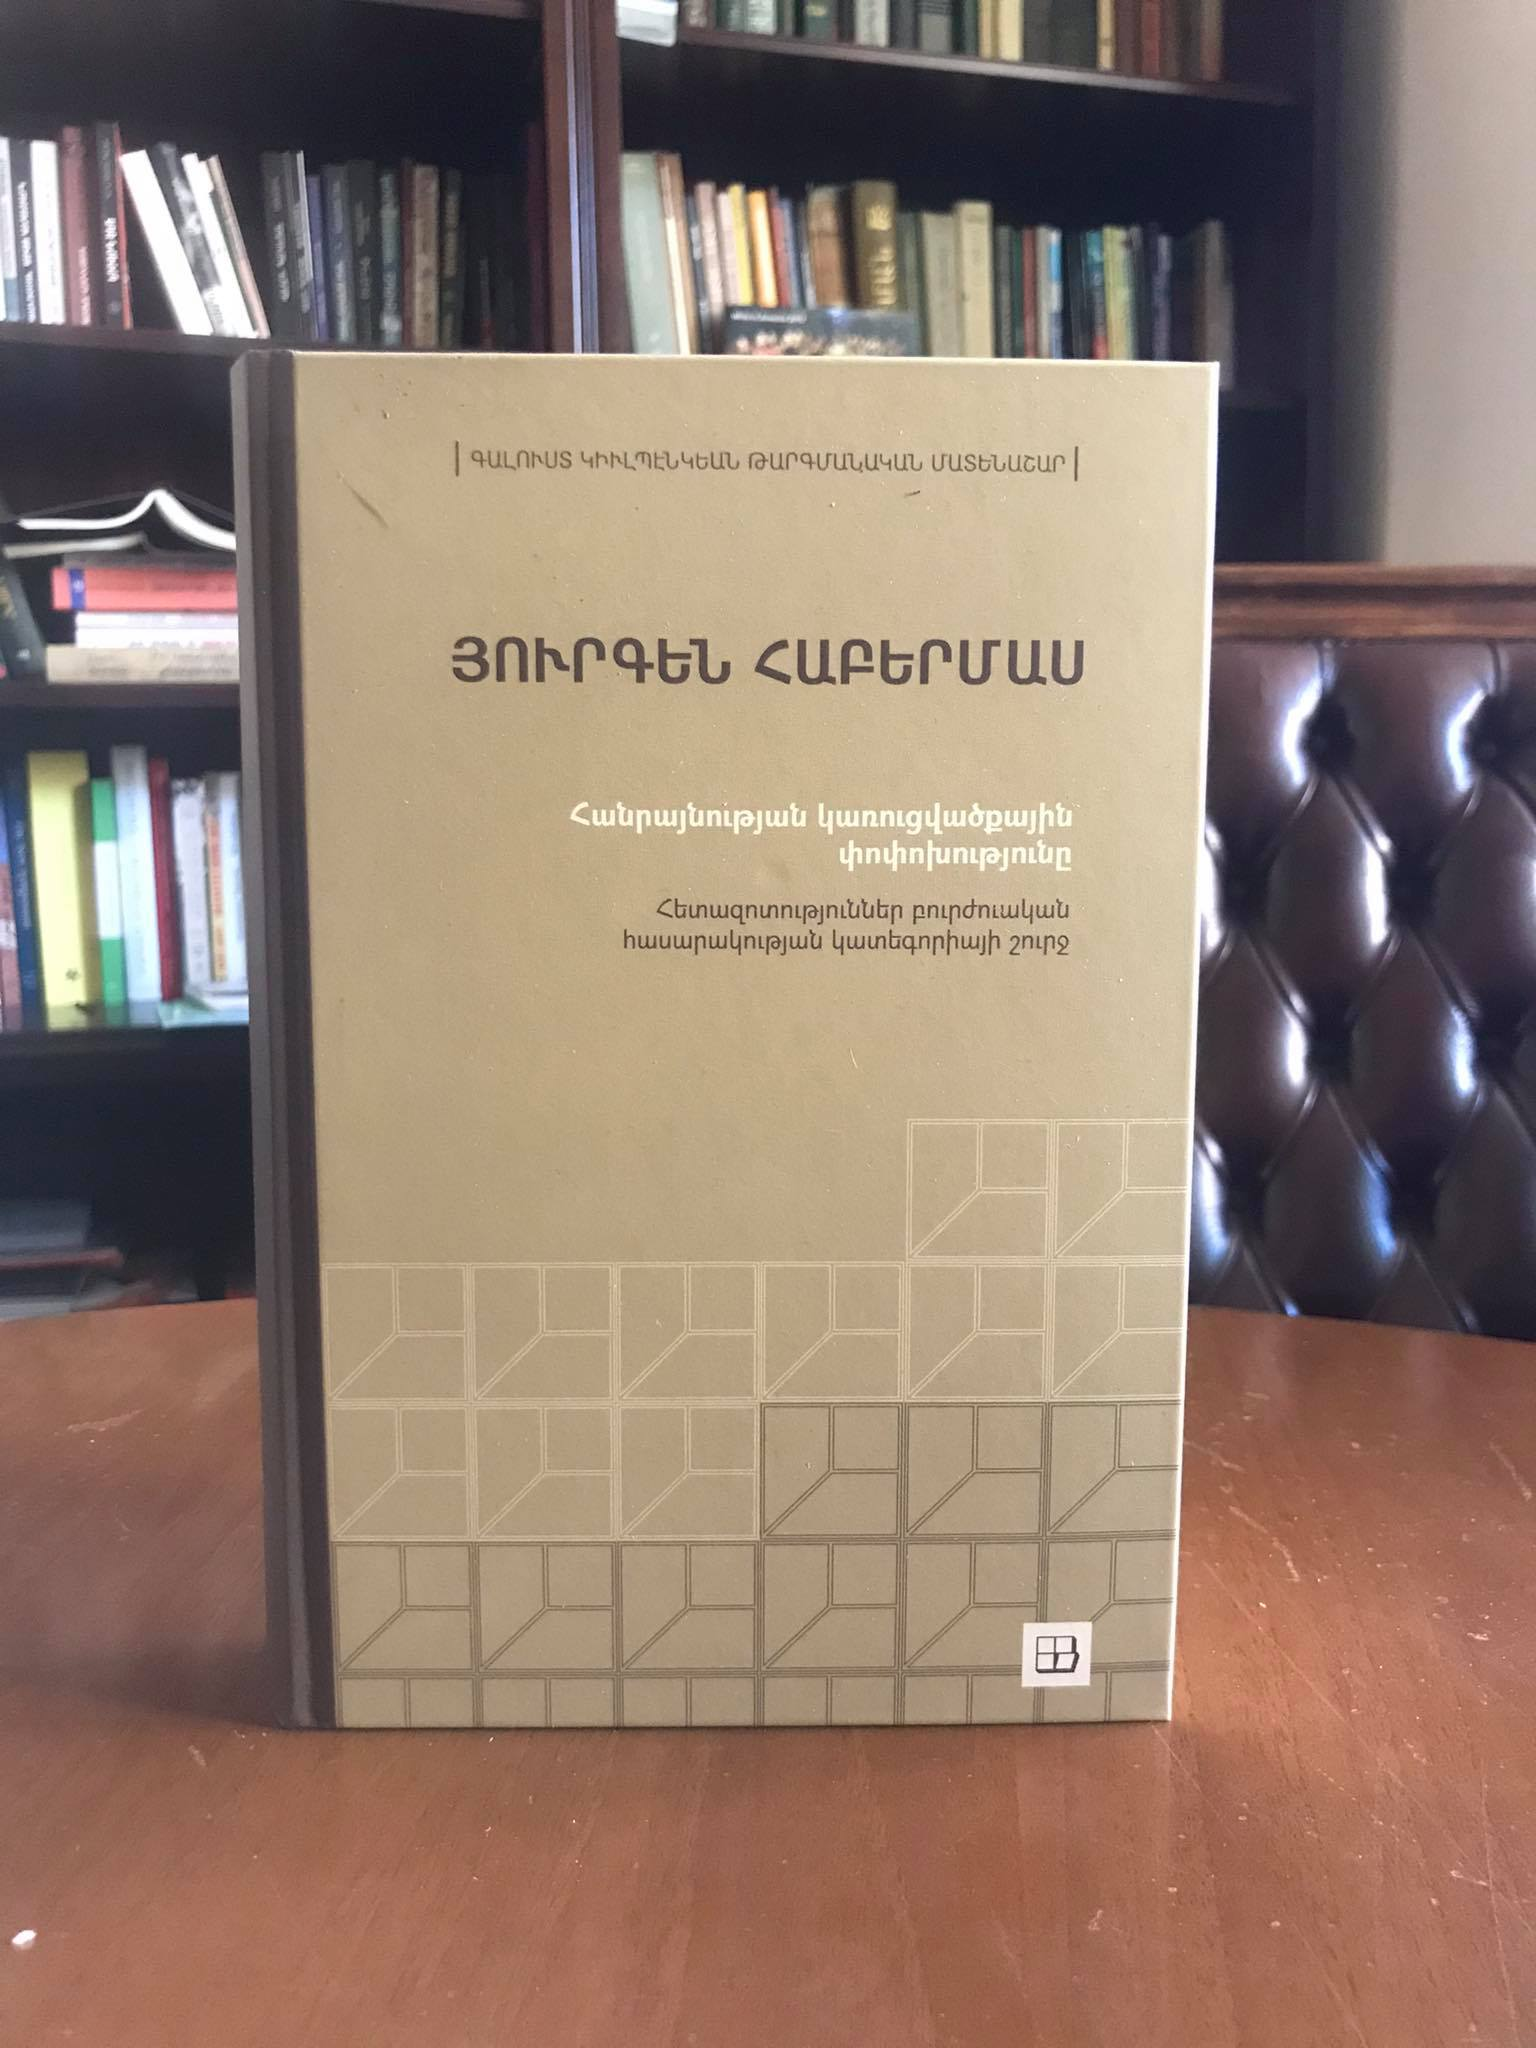 Armenian translation of The Structural Transformation of the Public Sphere by Jürgen Habermas